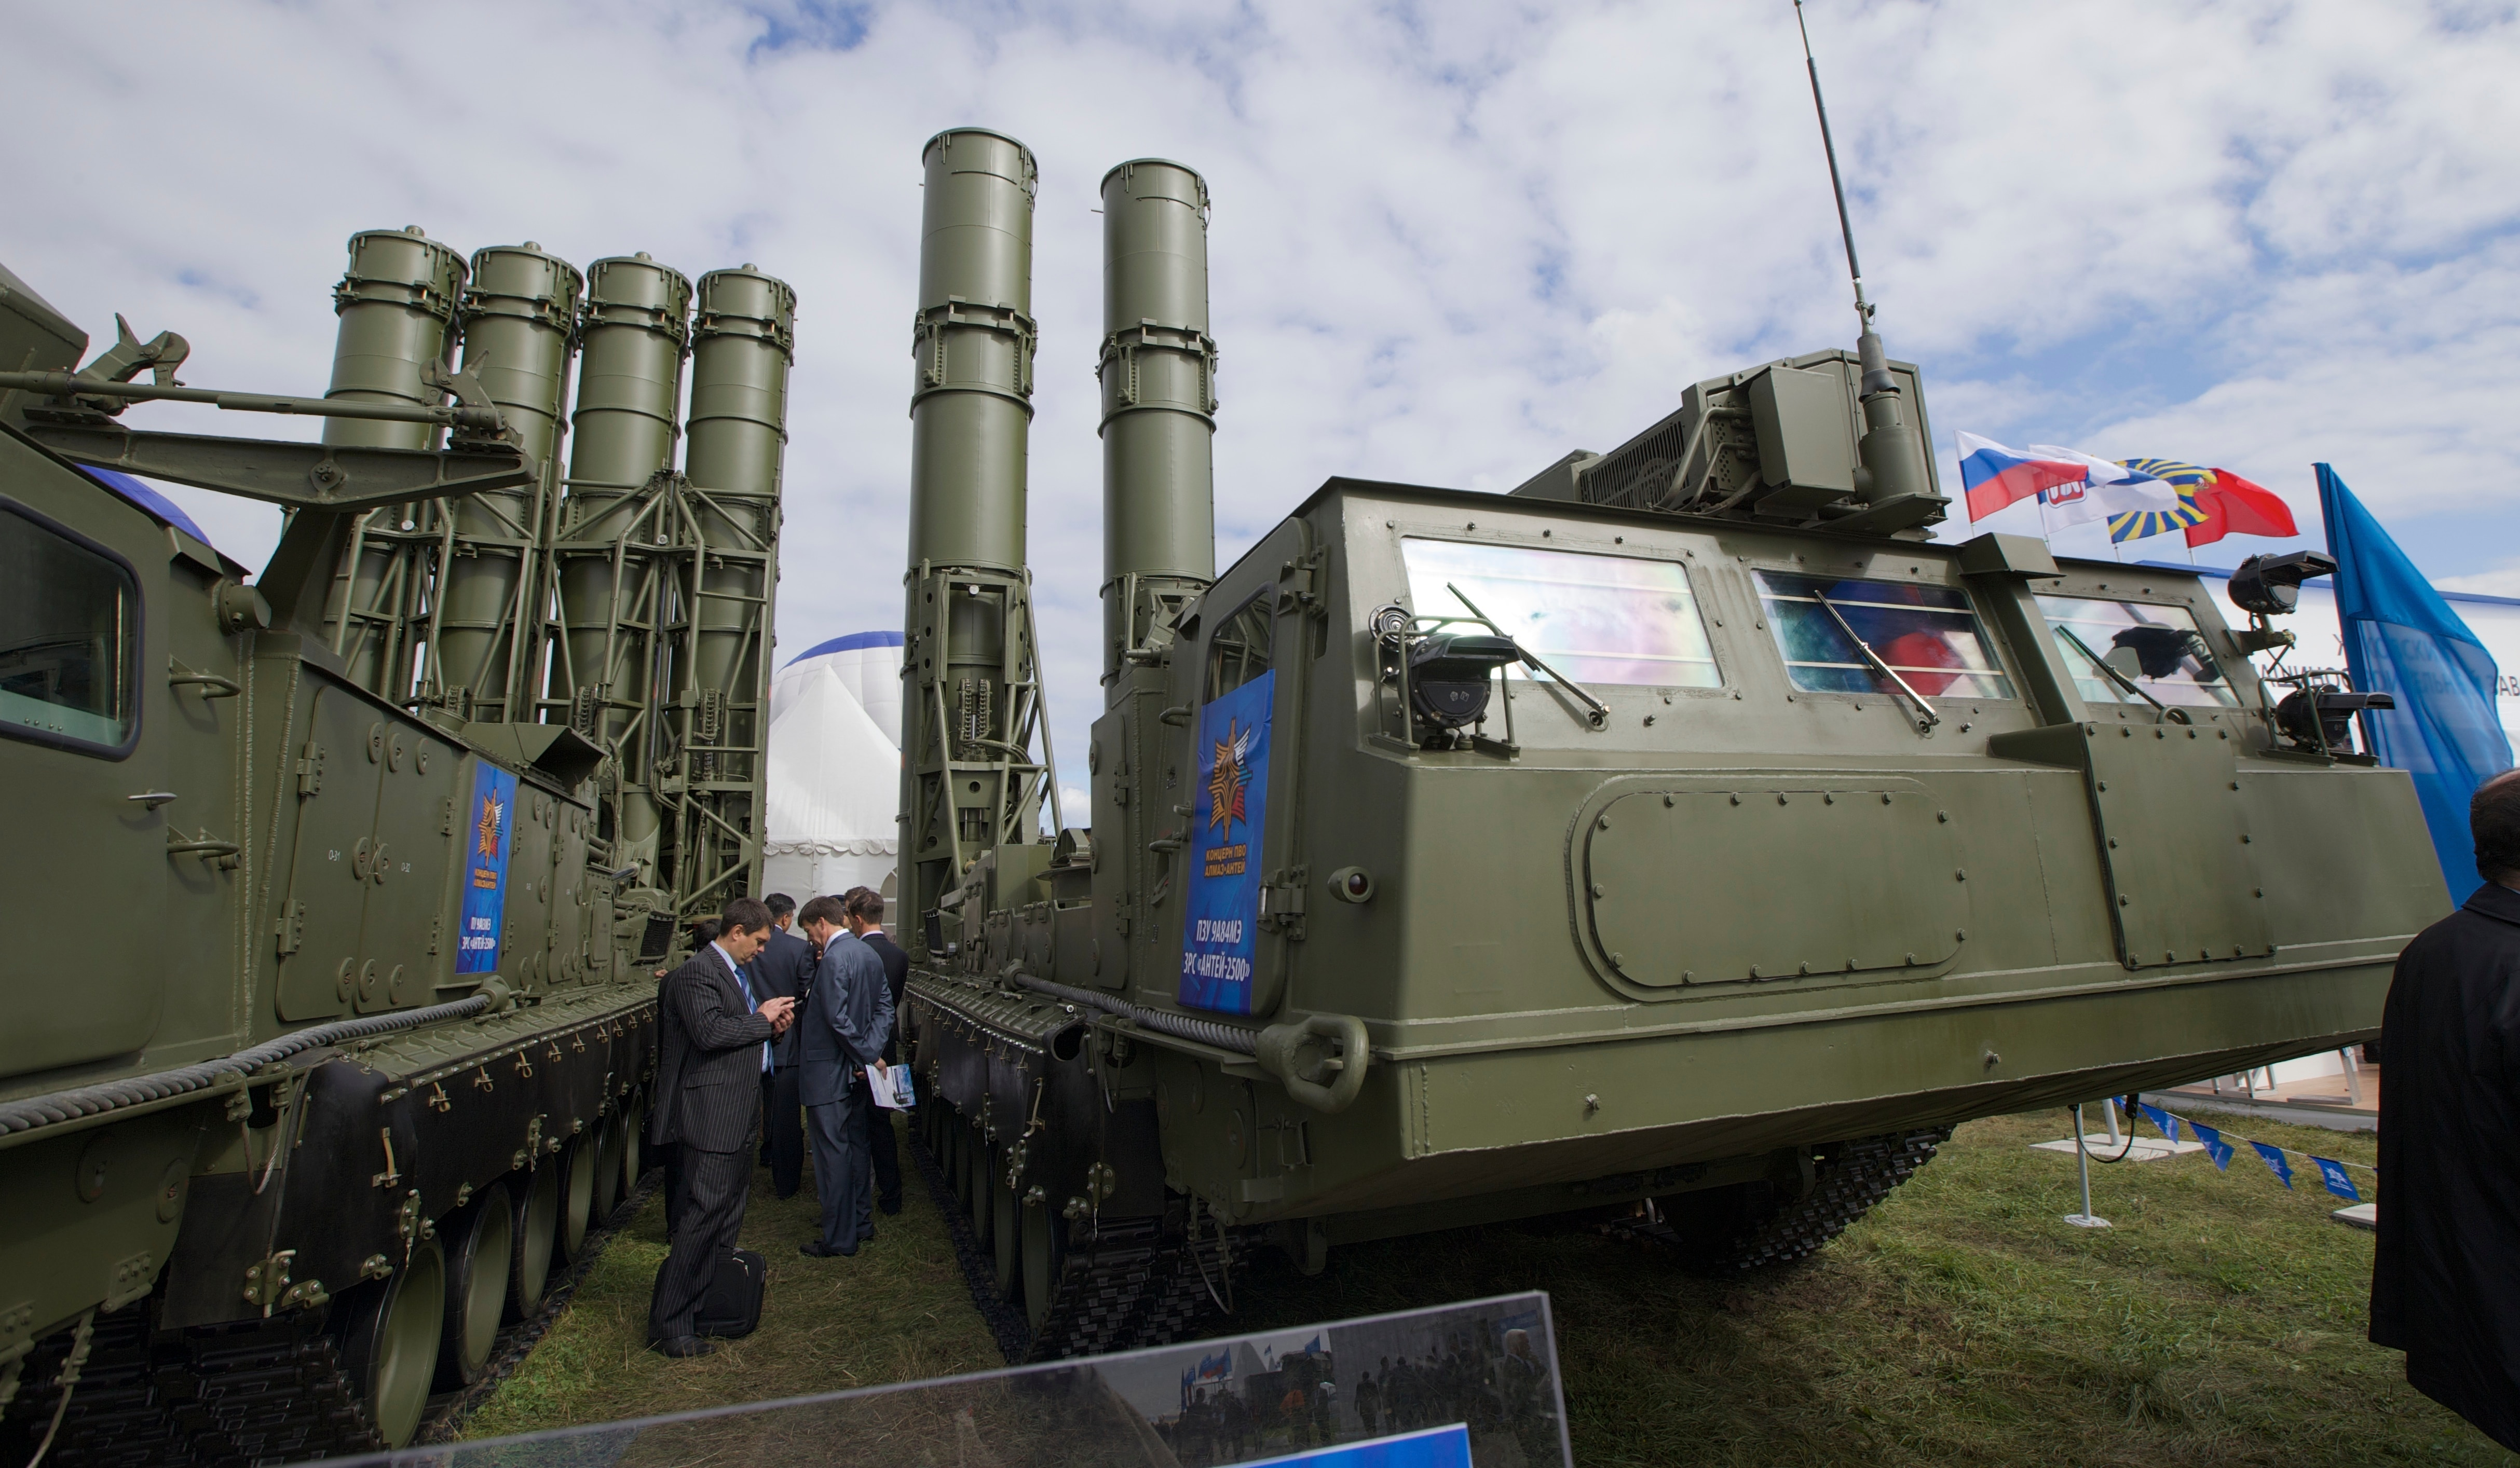 S-300 air defense missile system